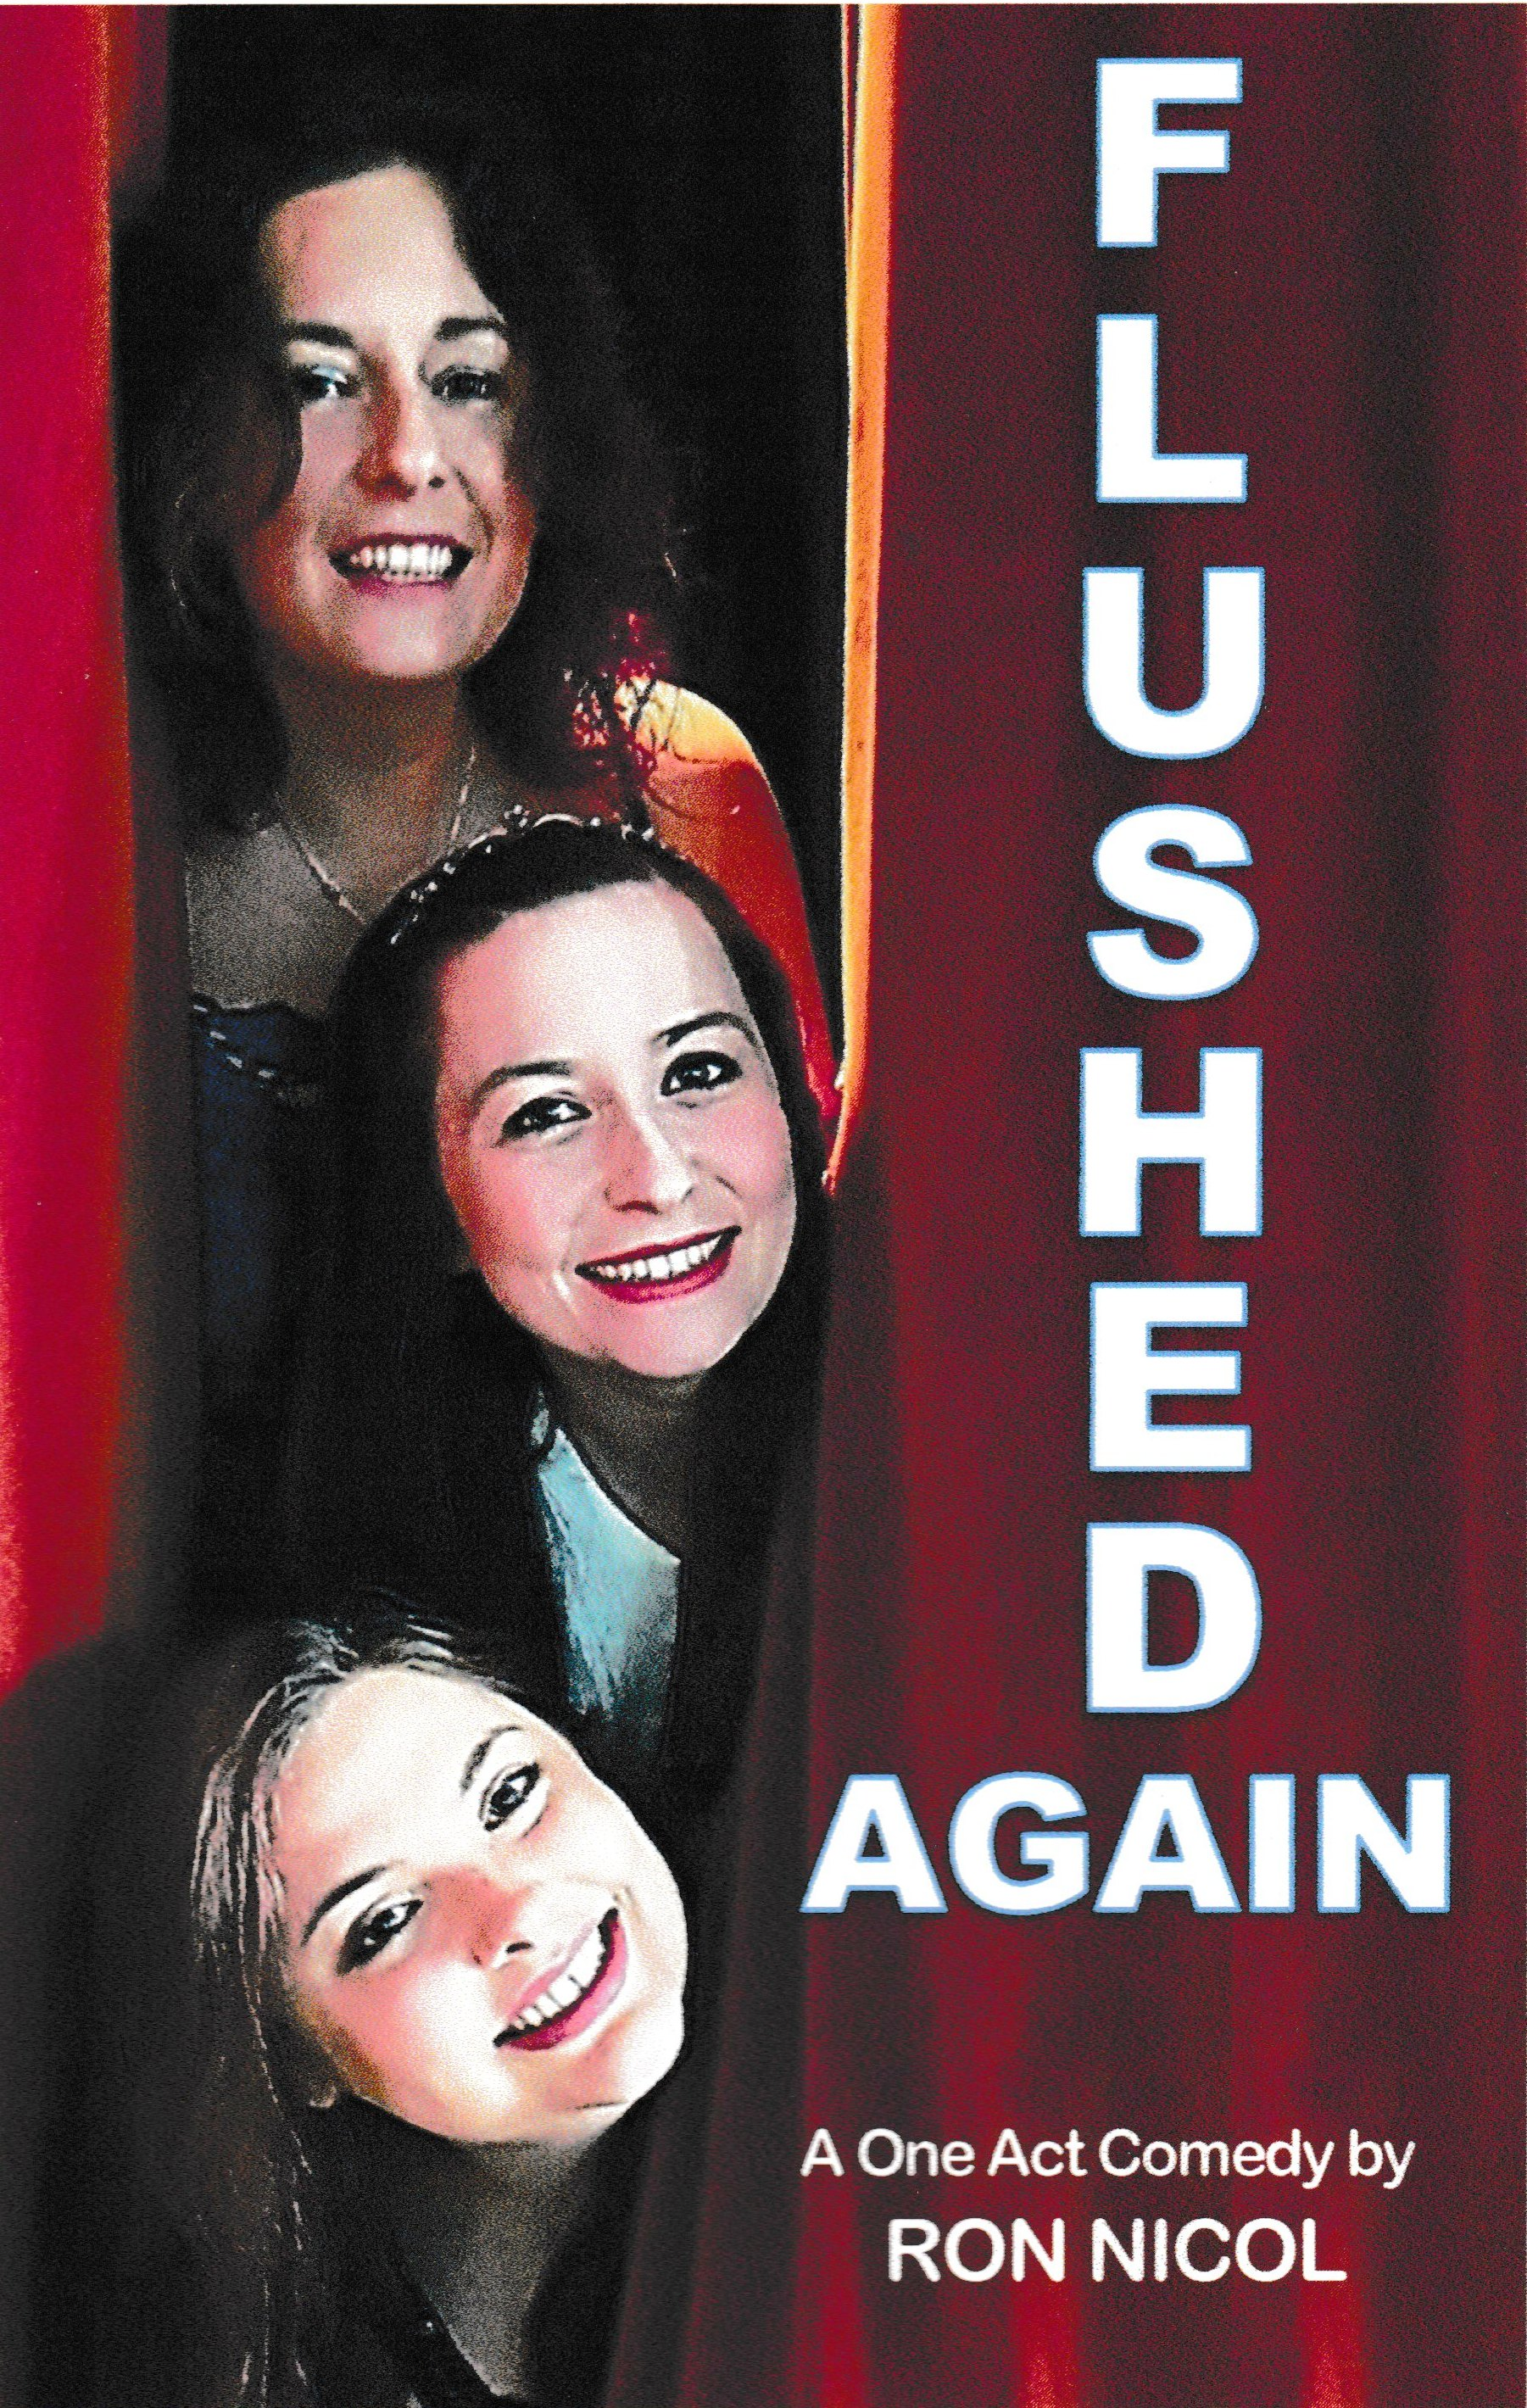 One Act Comedy Play Script: 'Flushed Again' by Ron Nicol